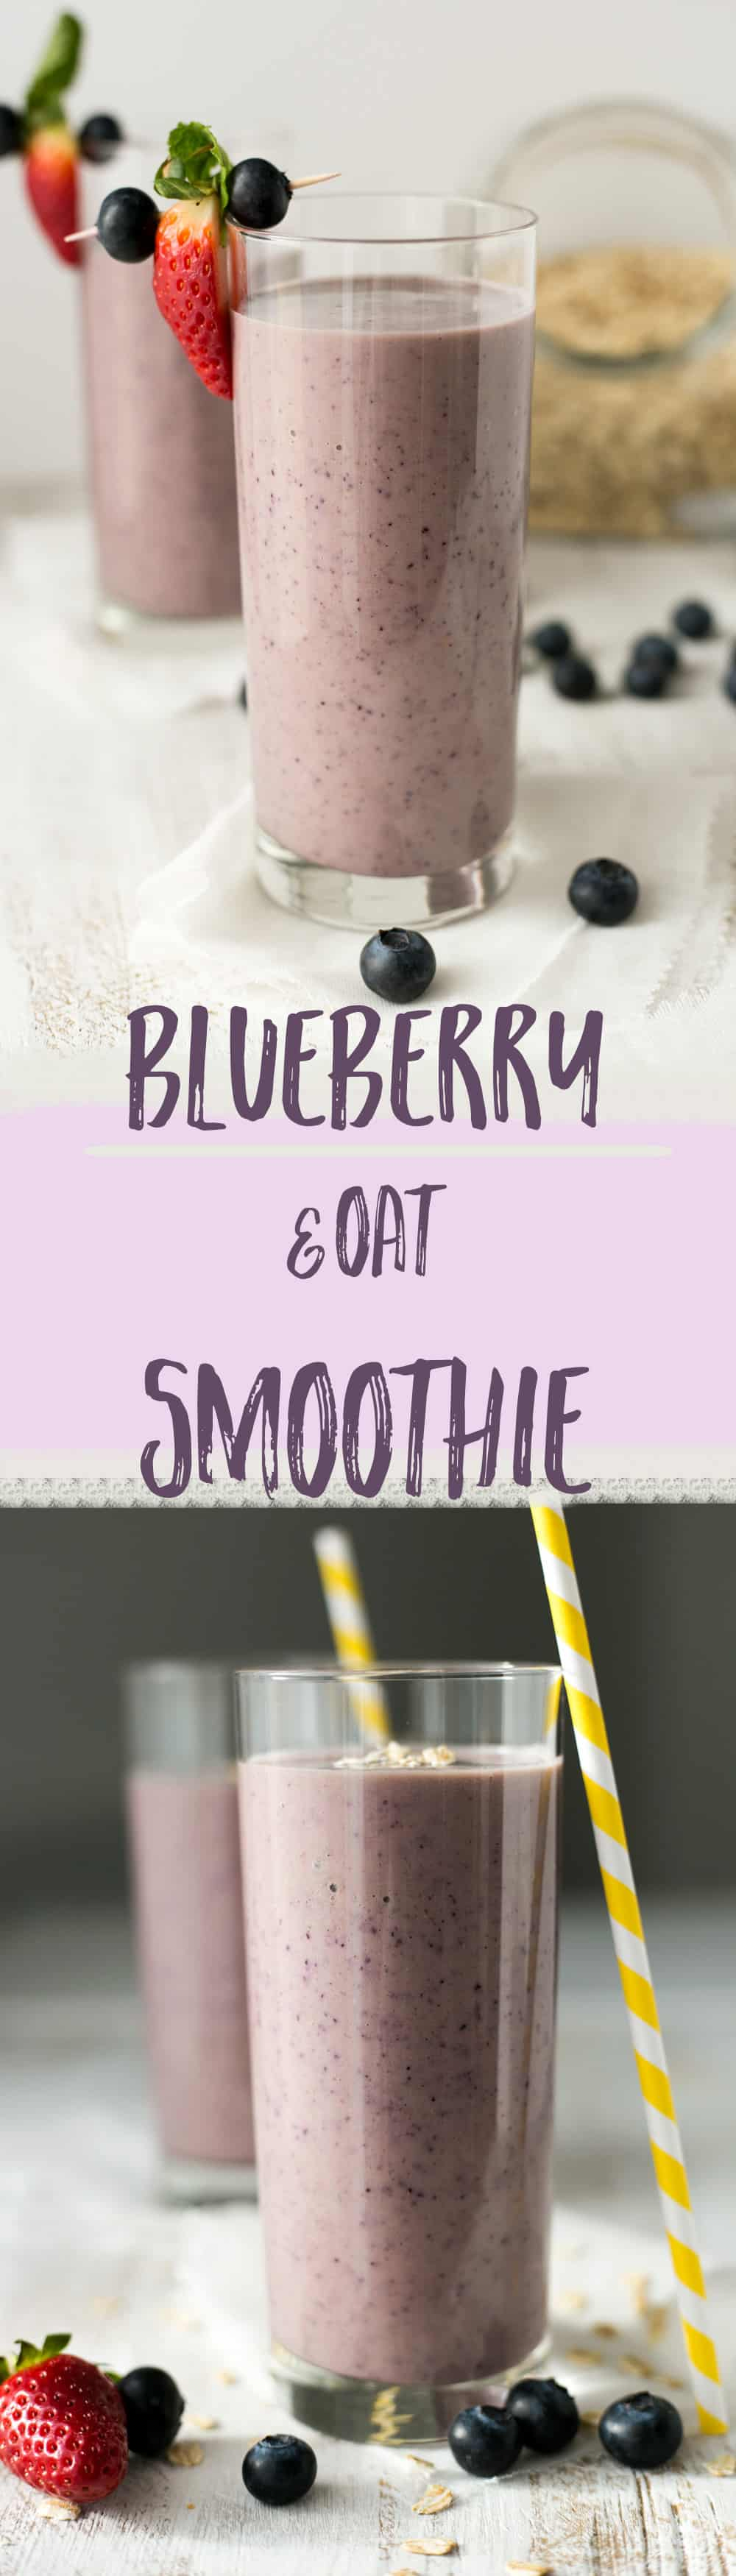 Classic blueberry & oat smoothie recipe. Quick, healthy and easy way to start your day! | via @annabanana.co